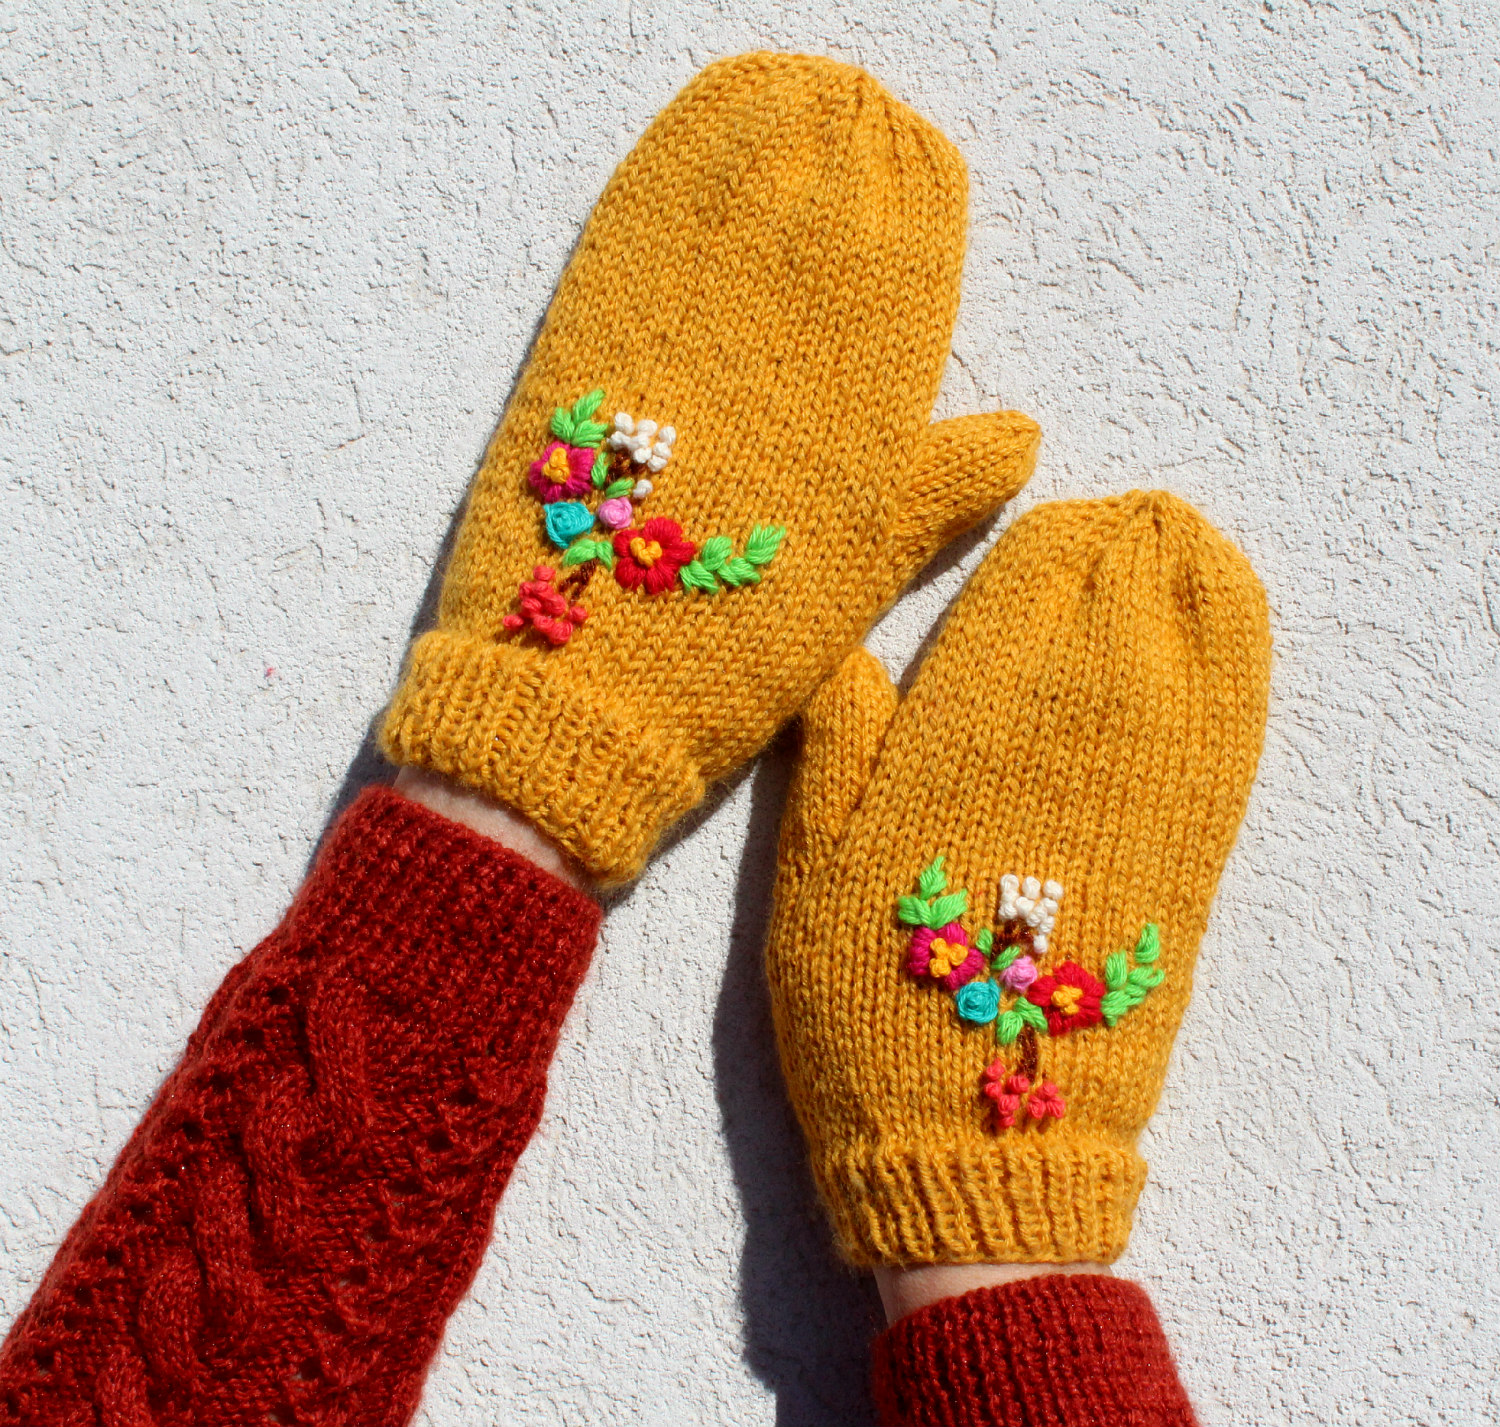 Embroidery Floral Bouquet Mittens Gloves knitting pattern two mitts gloves with flowers embroidery